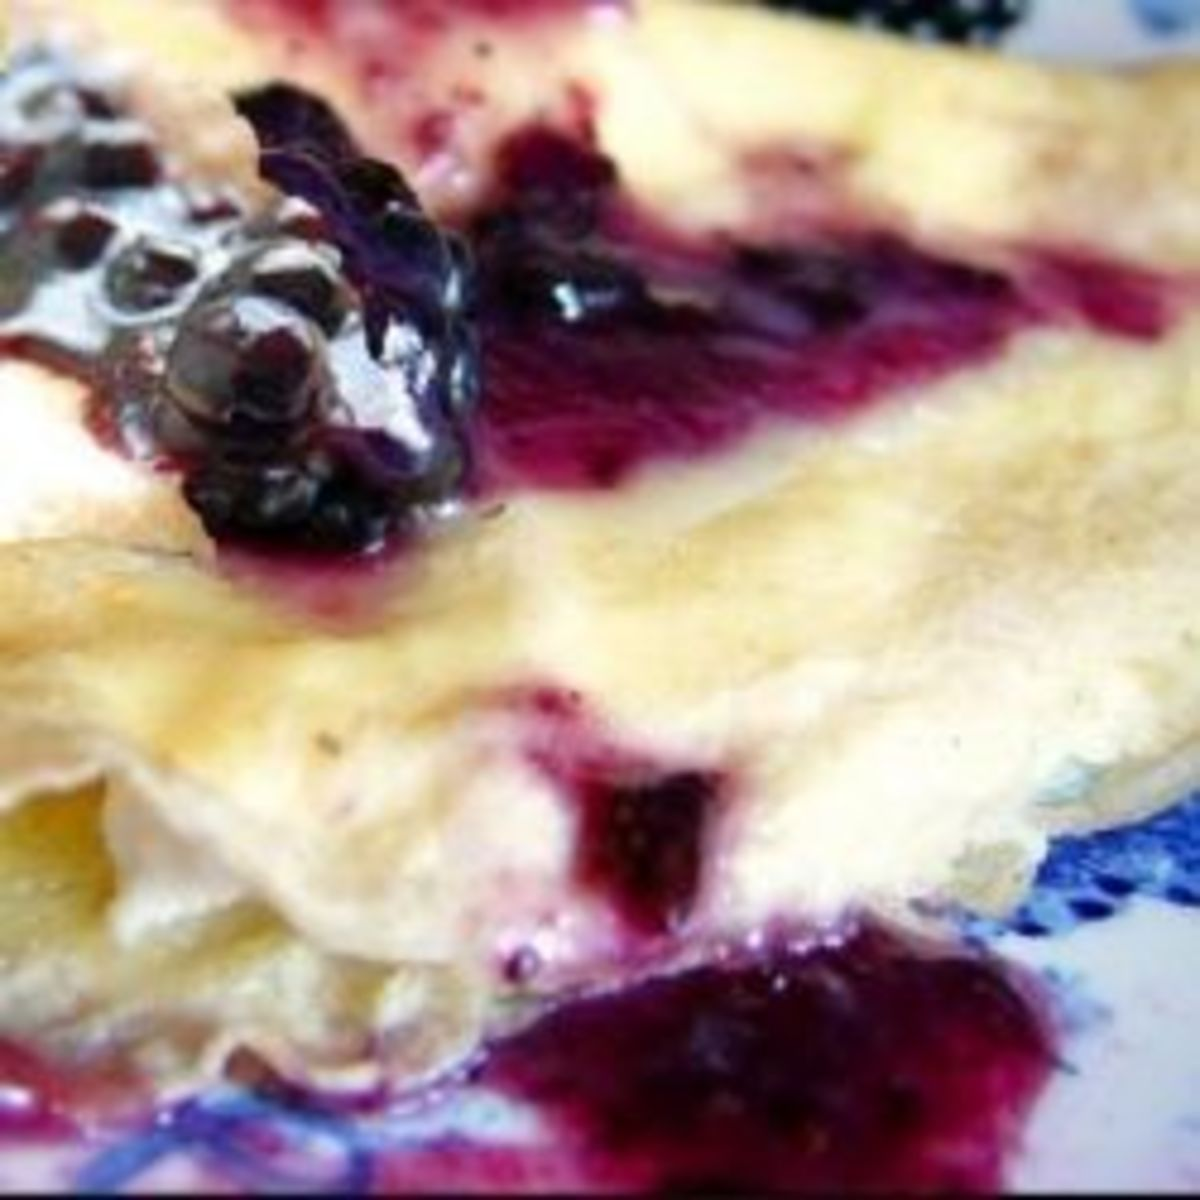 What's For Brunch? My Best Blueberry Blintz